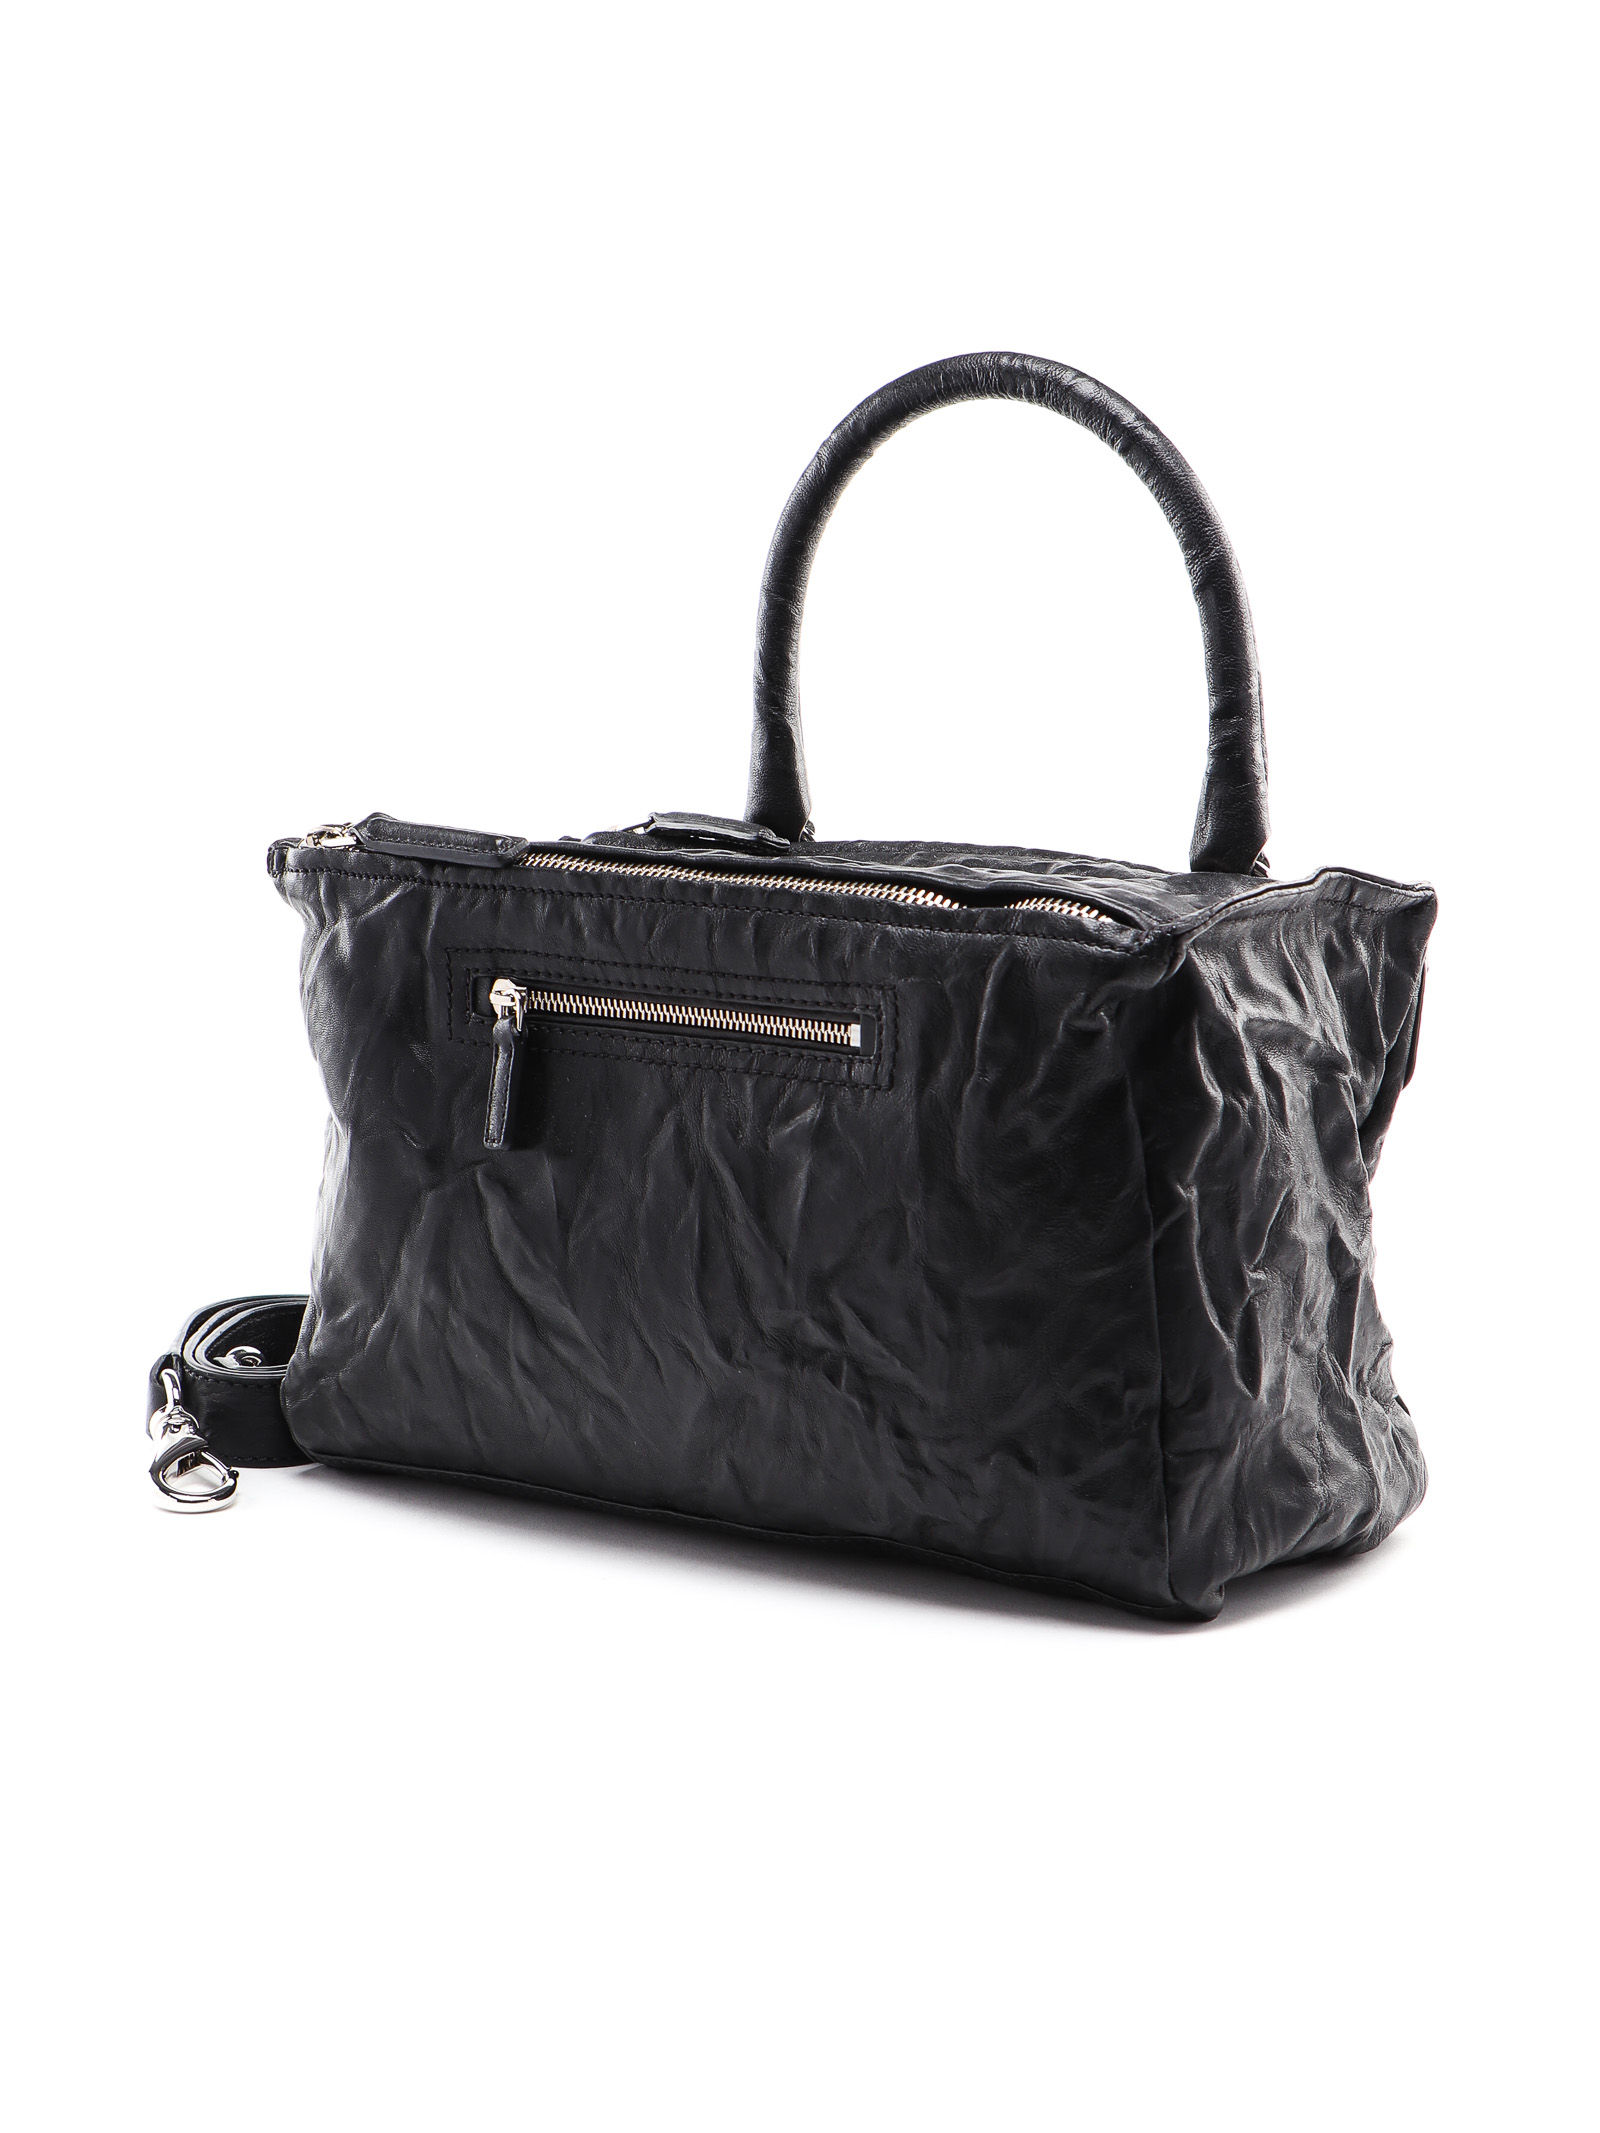 Picture of Givenchy | Pandora Md Bag